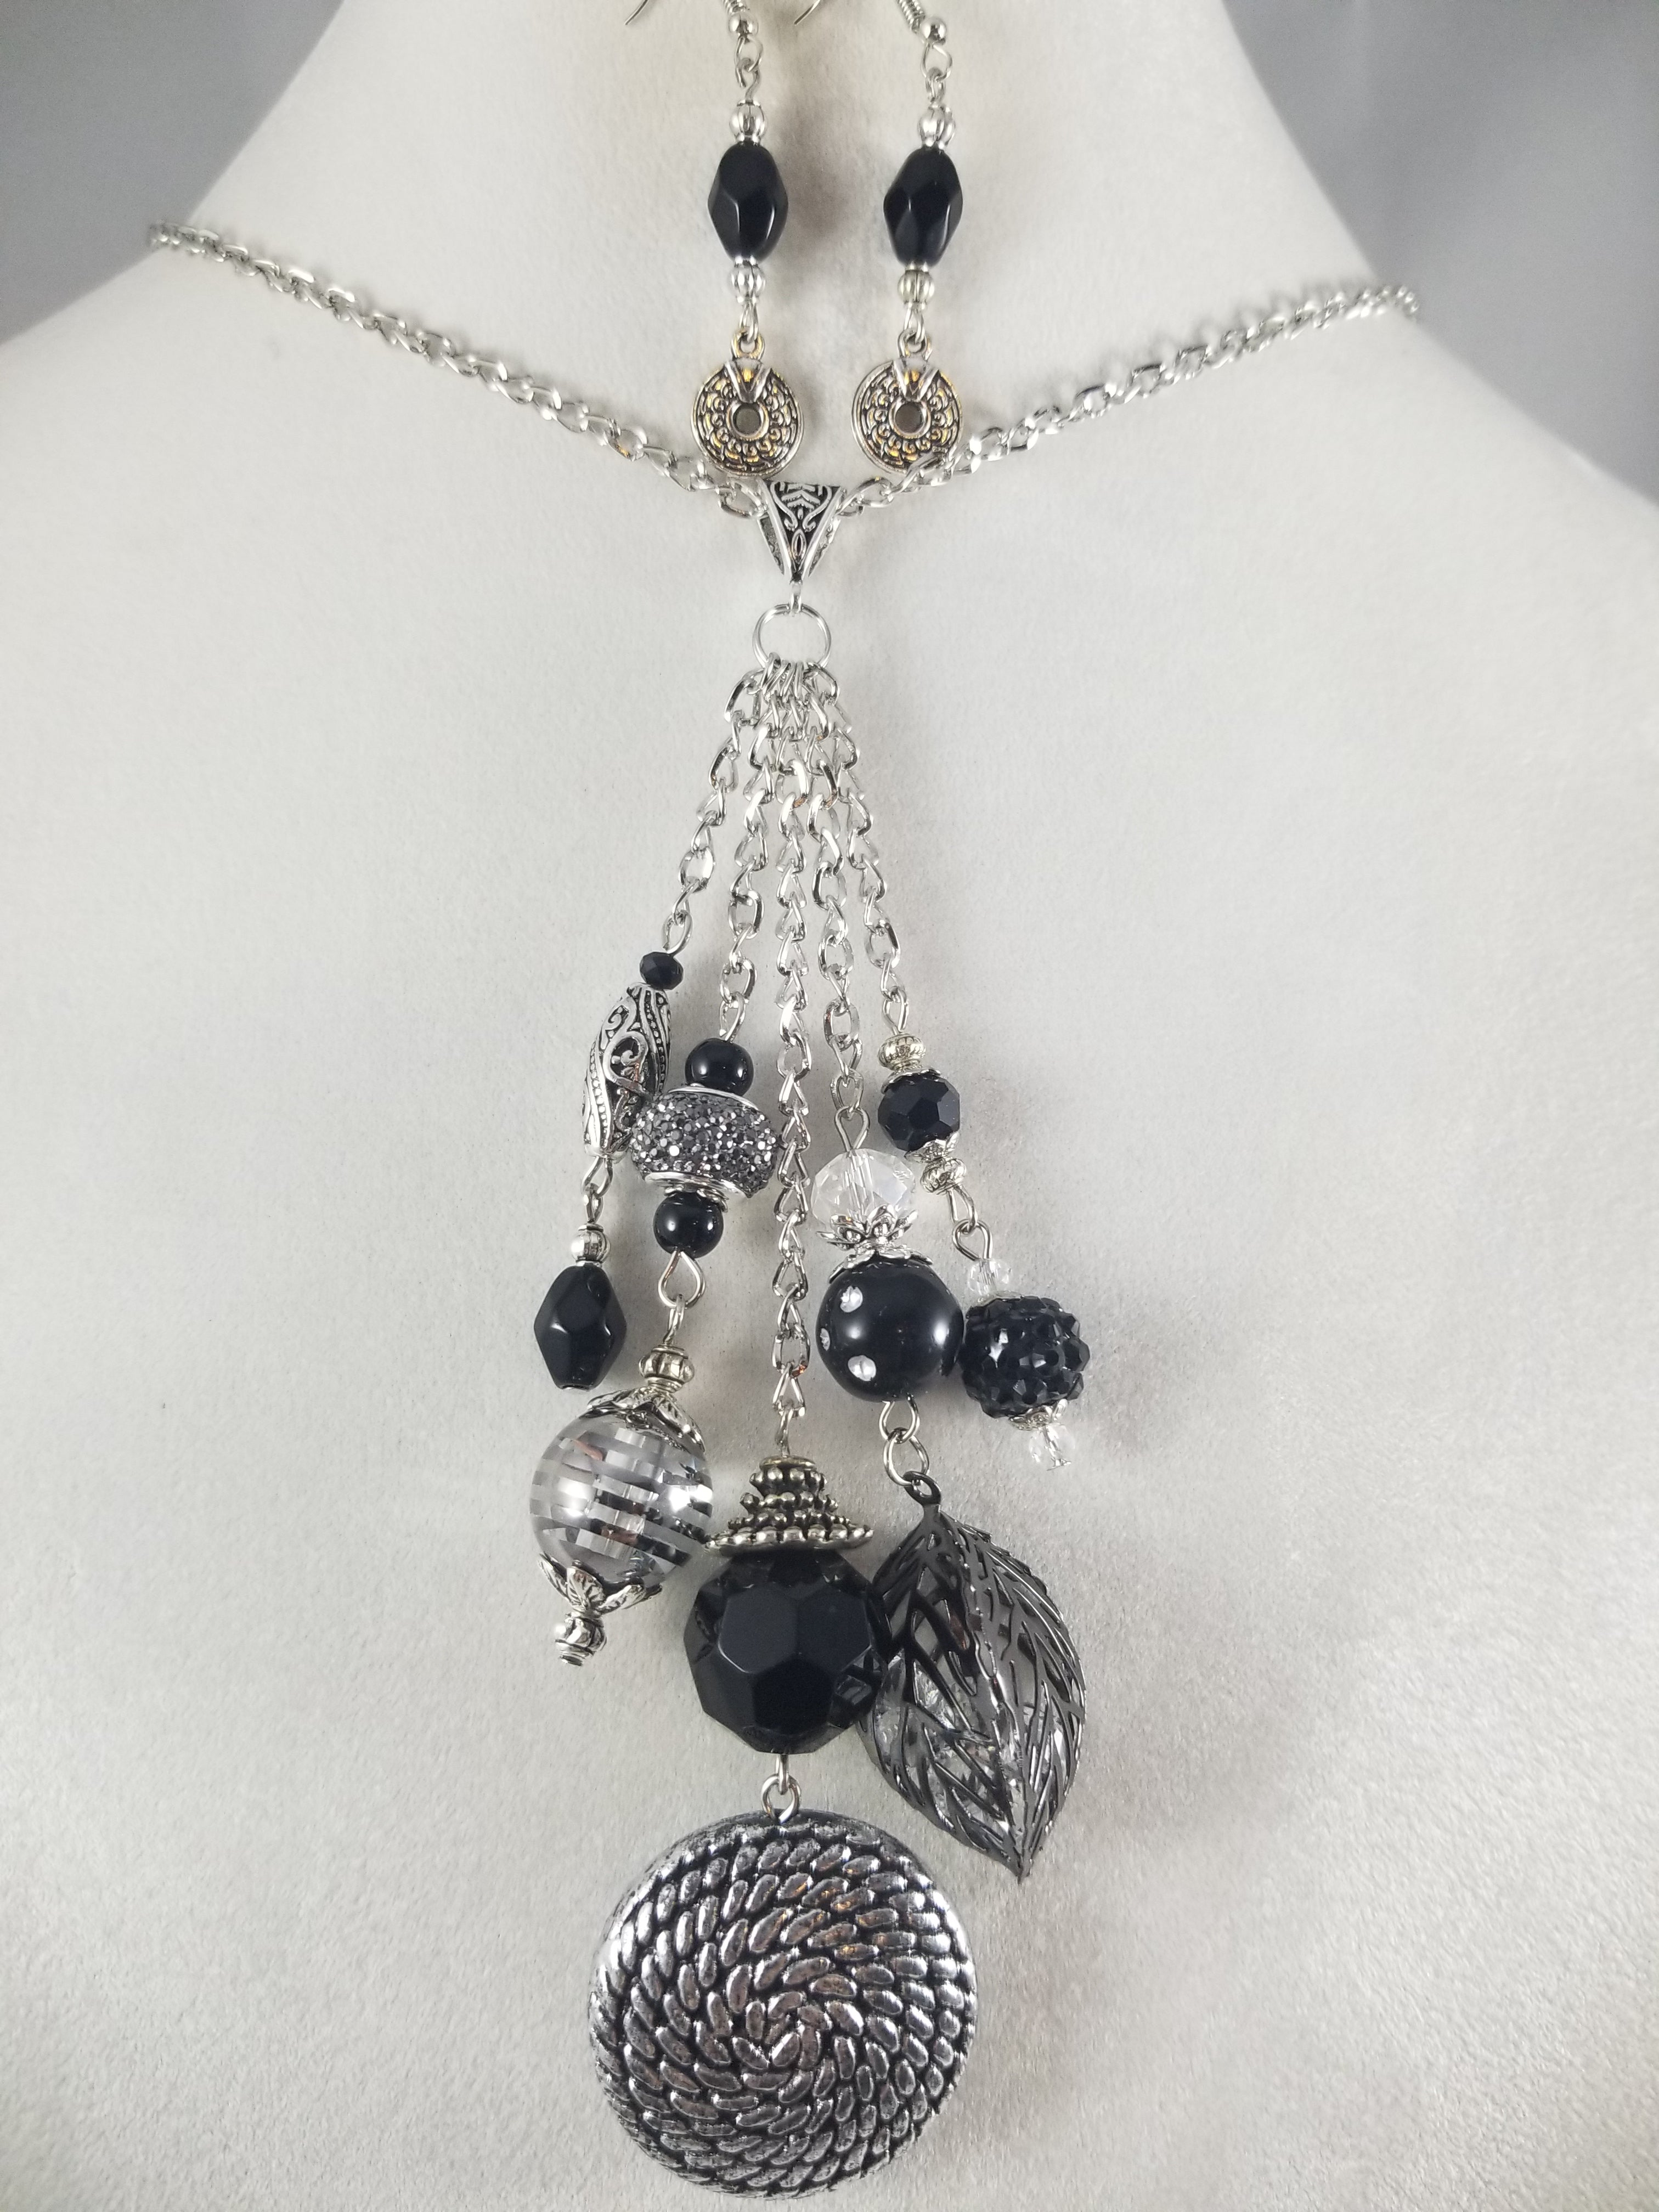 Sizzle Necklace with Earrings